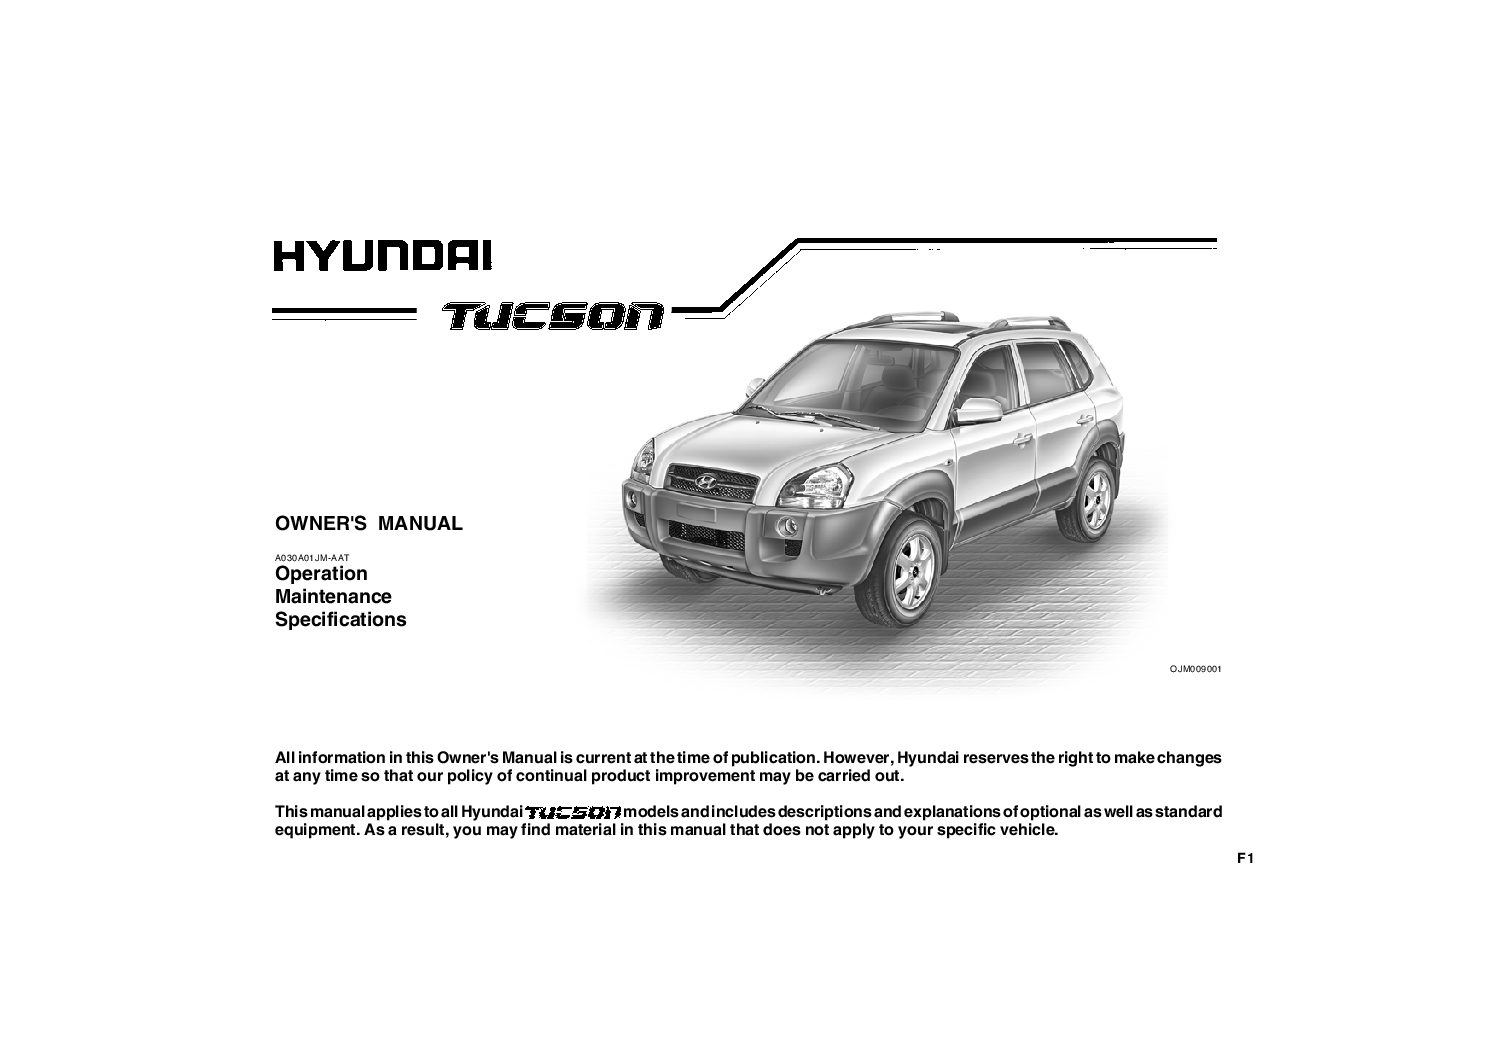 2009 hyundai tucson owners manual open source user manual u2022 rh dramatic varieties com Hyundai Sonata Manual Transmission hyundai sonata 2008 factory service repair manual download